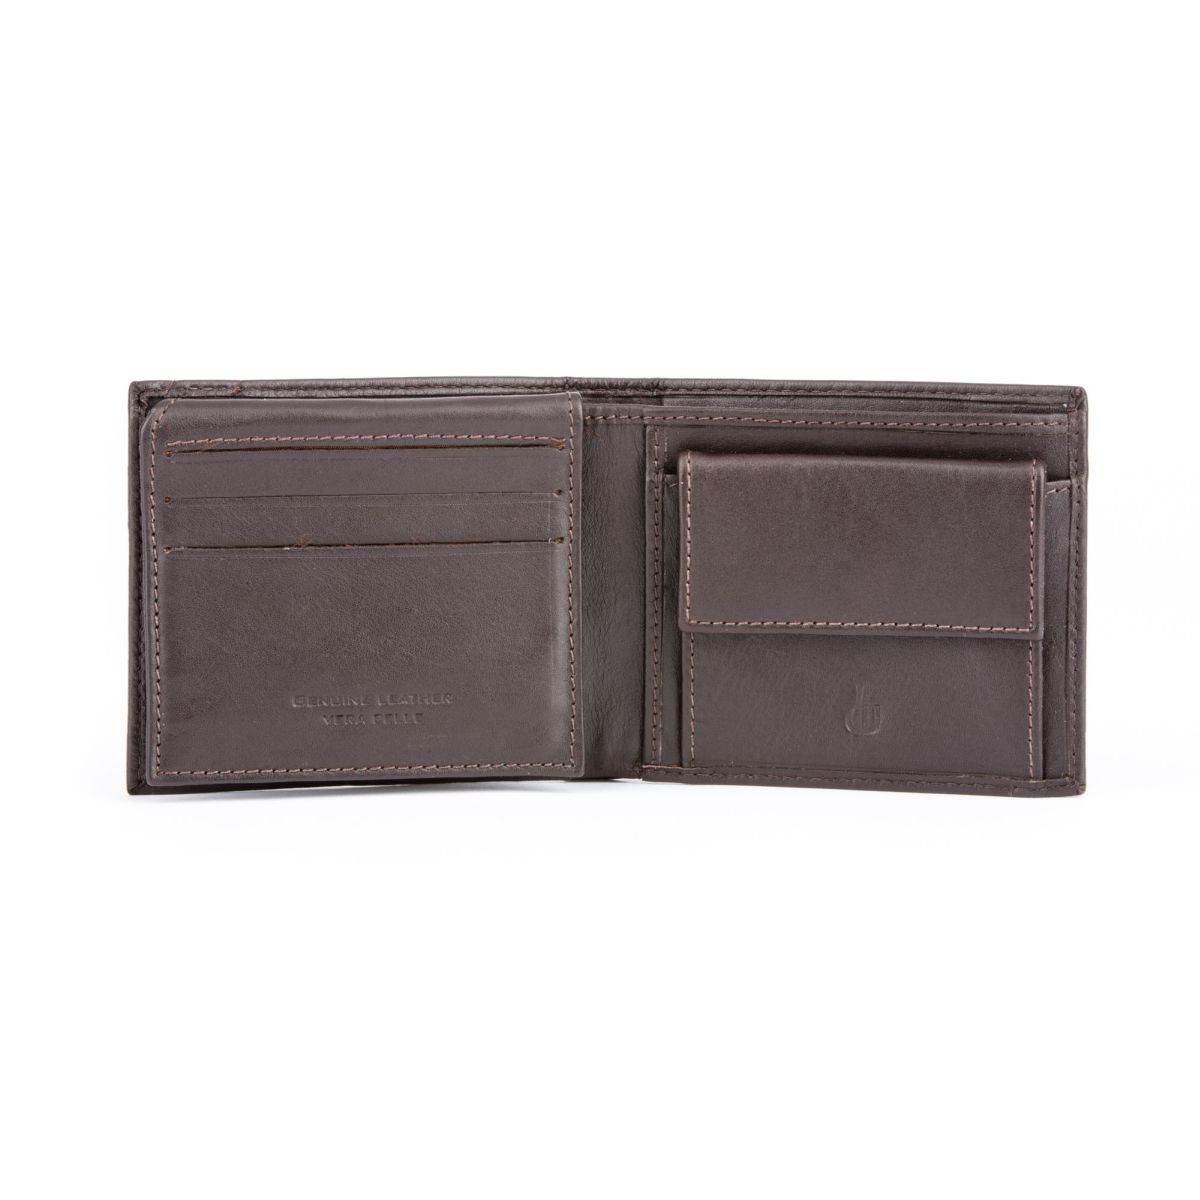 dv Compact Leather Wallet With Coin Pocket - Dark Brown